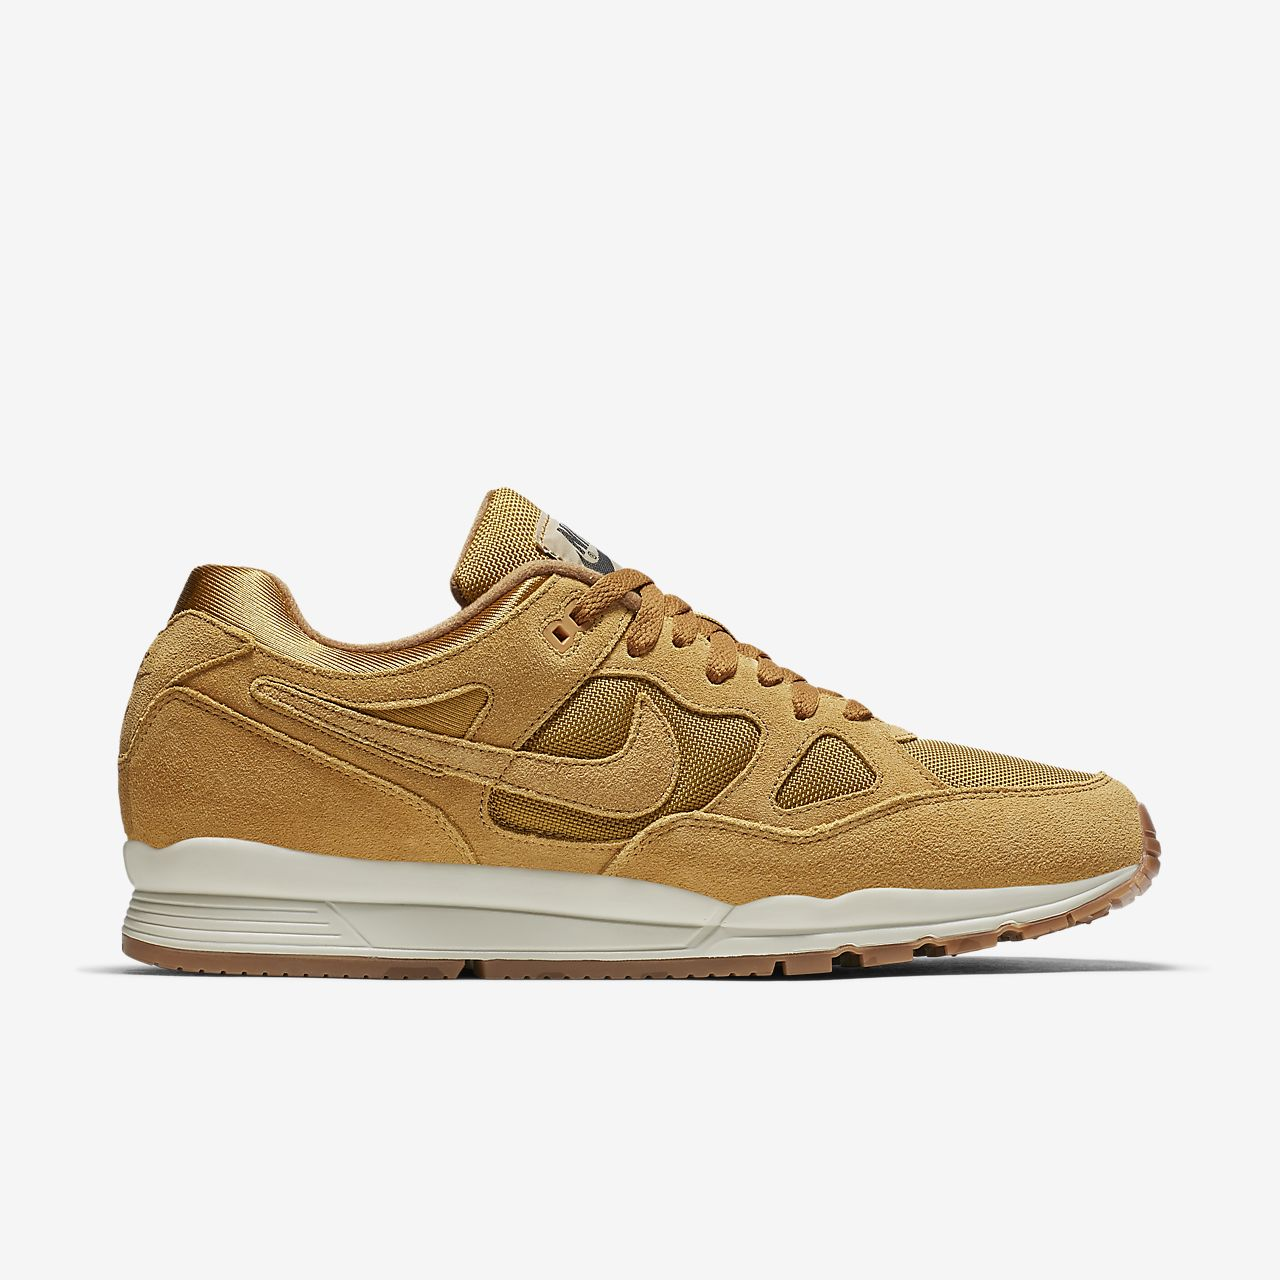 9e27bb0b22a08 Nike Air Span II Premium Men s Shoe. Nike.com NO